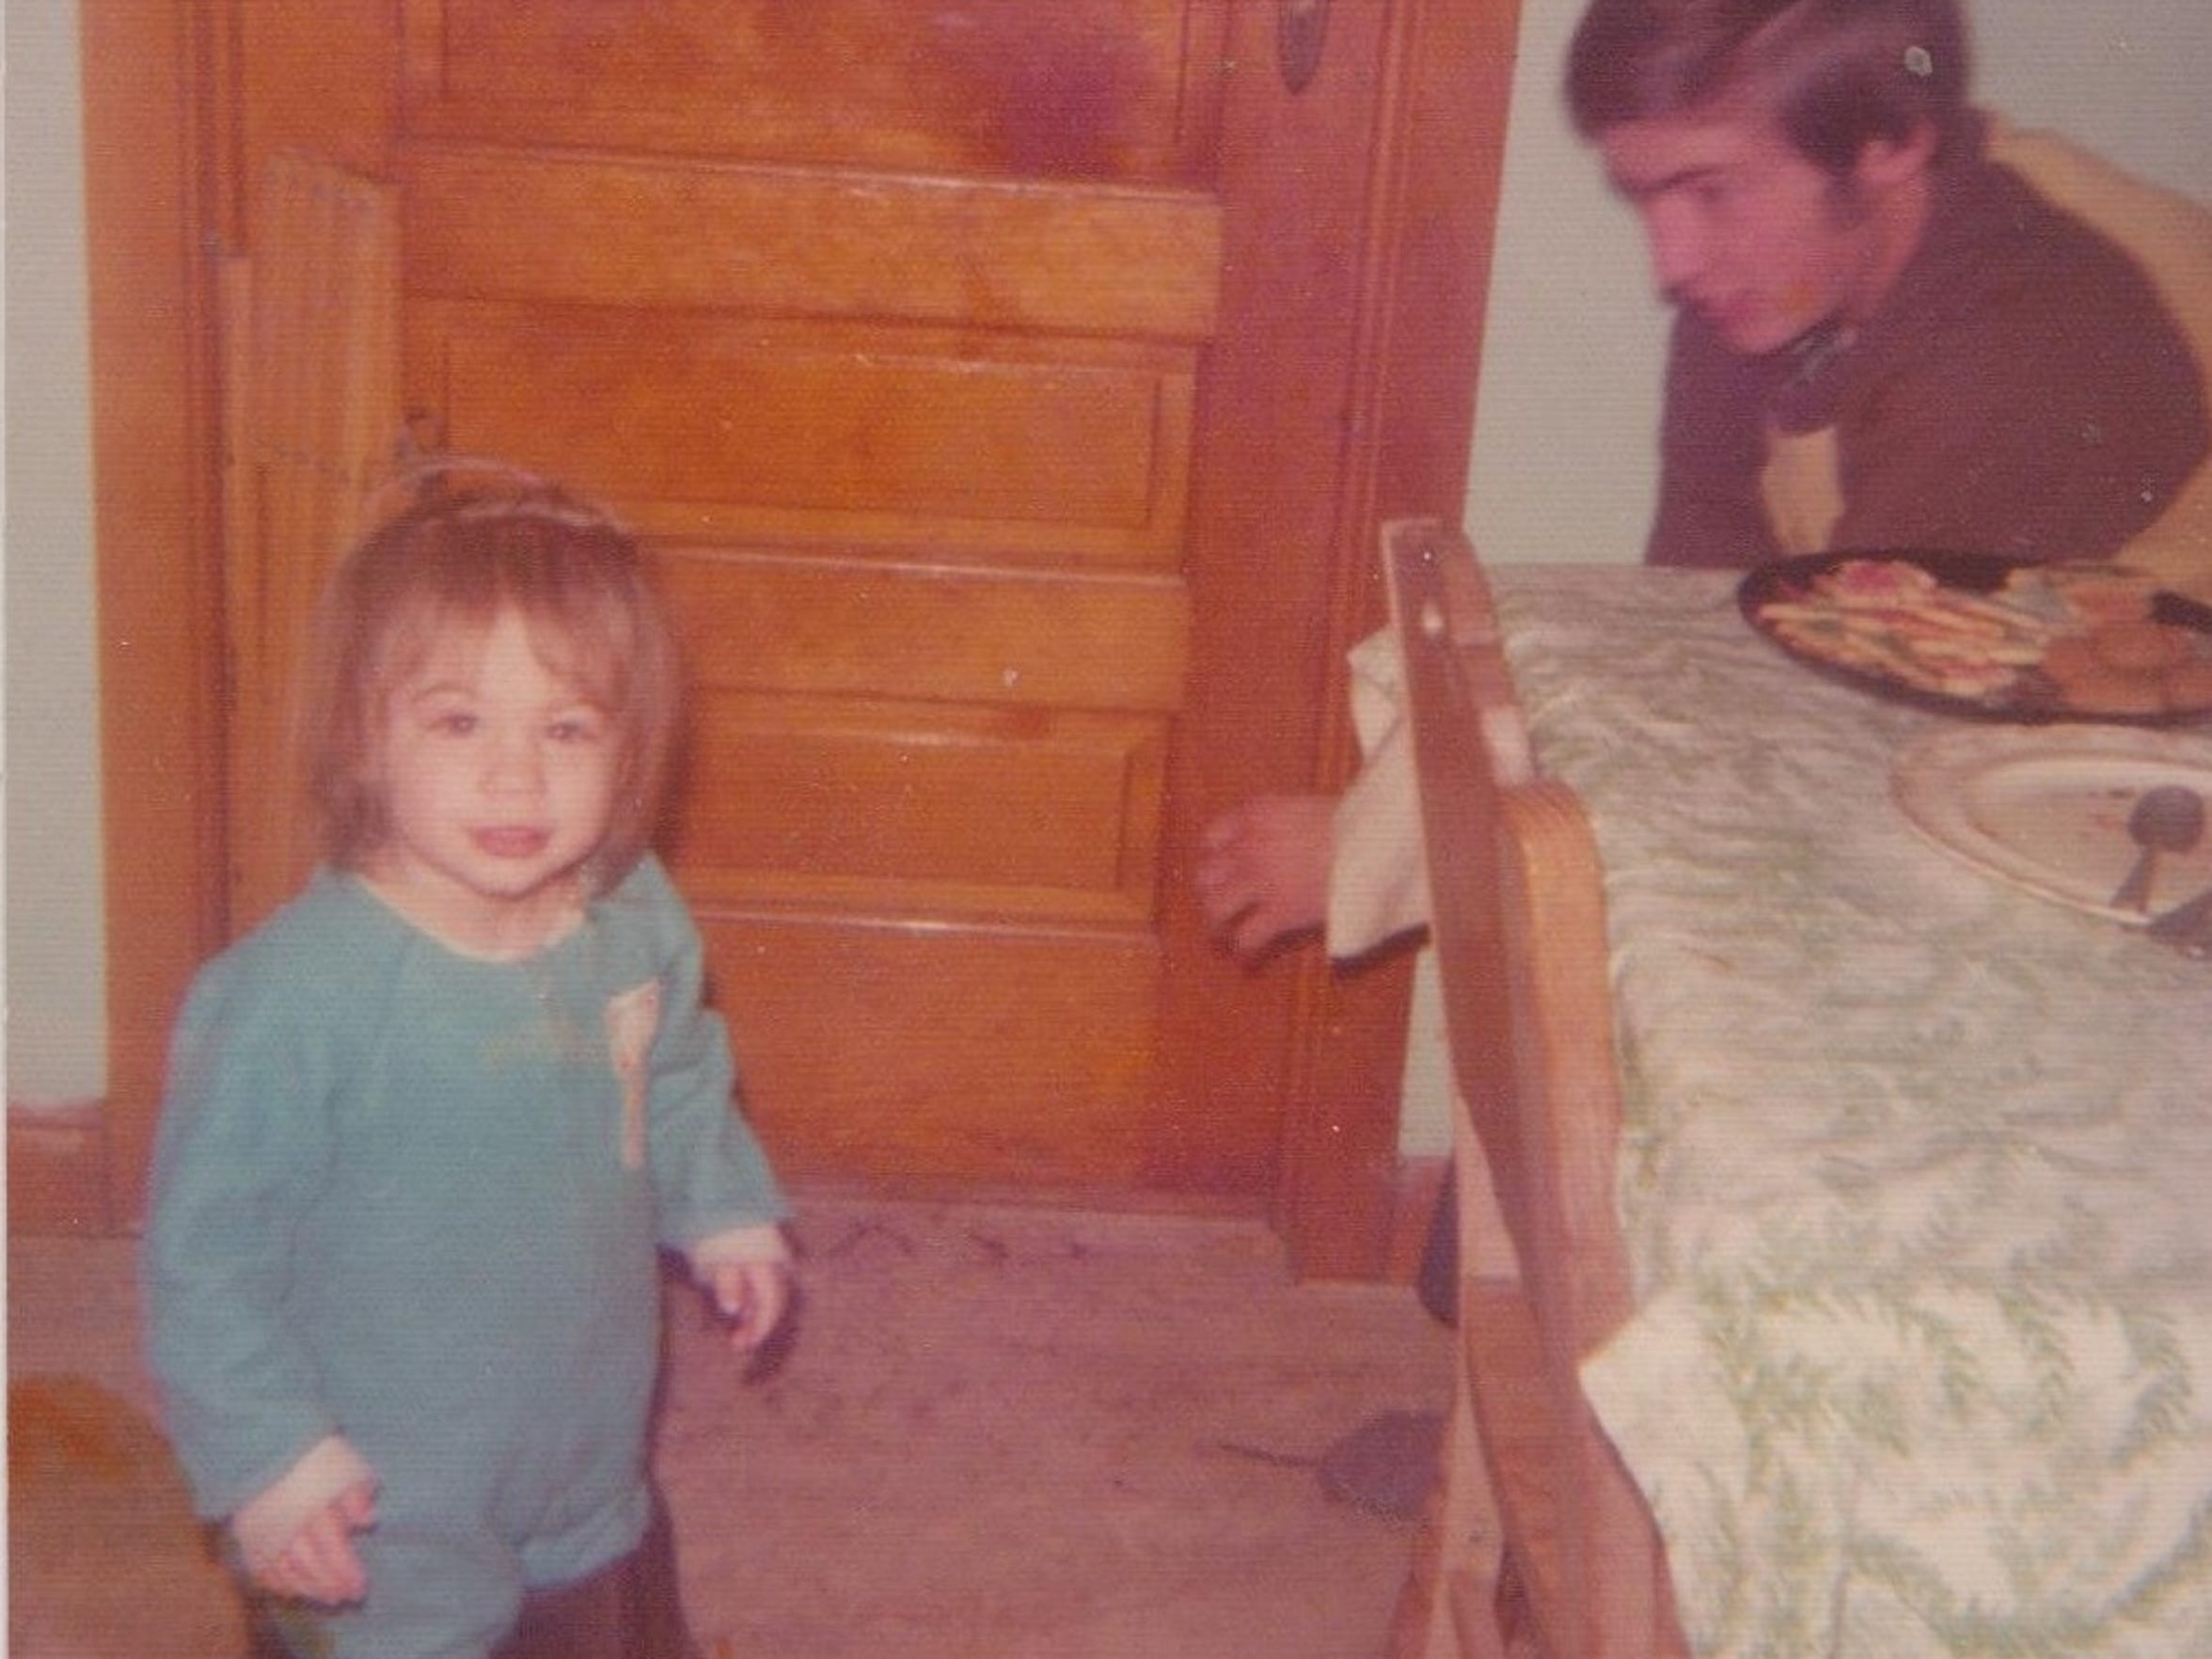 A photo of Heidi Wolfe as a toddler. Year unknown.